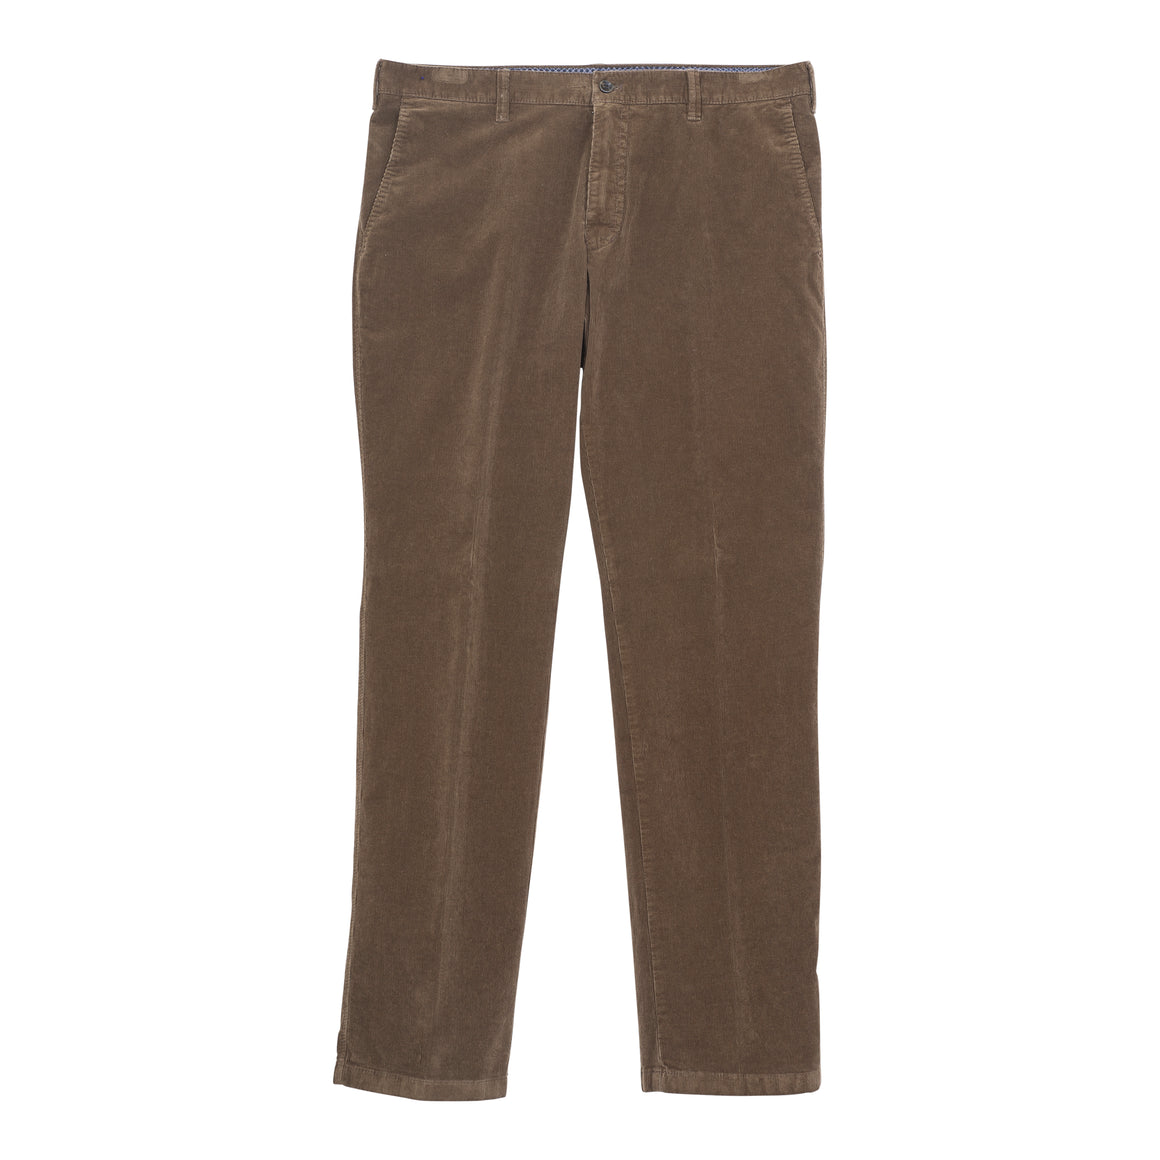 Needlecord Trouser for Men in Chocolate